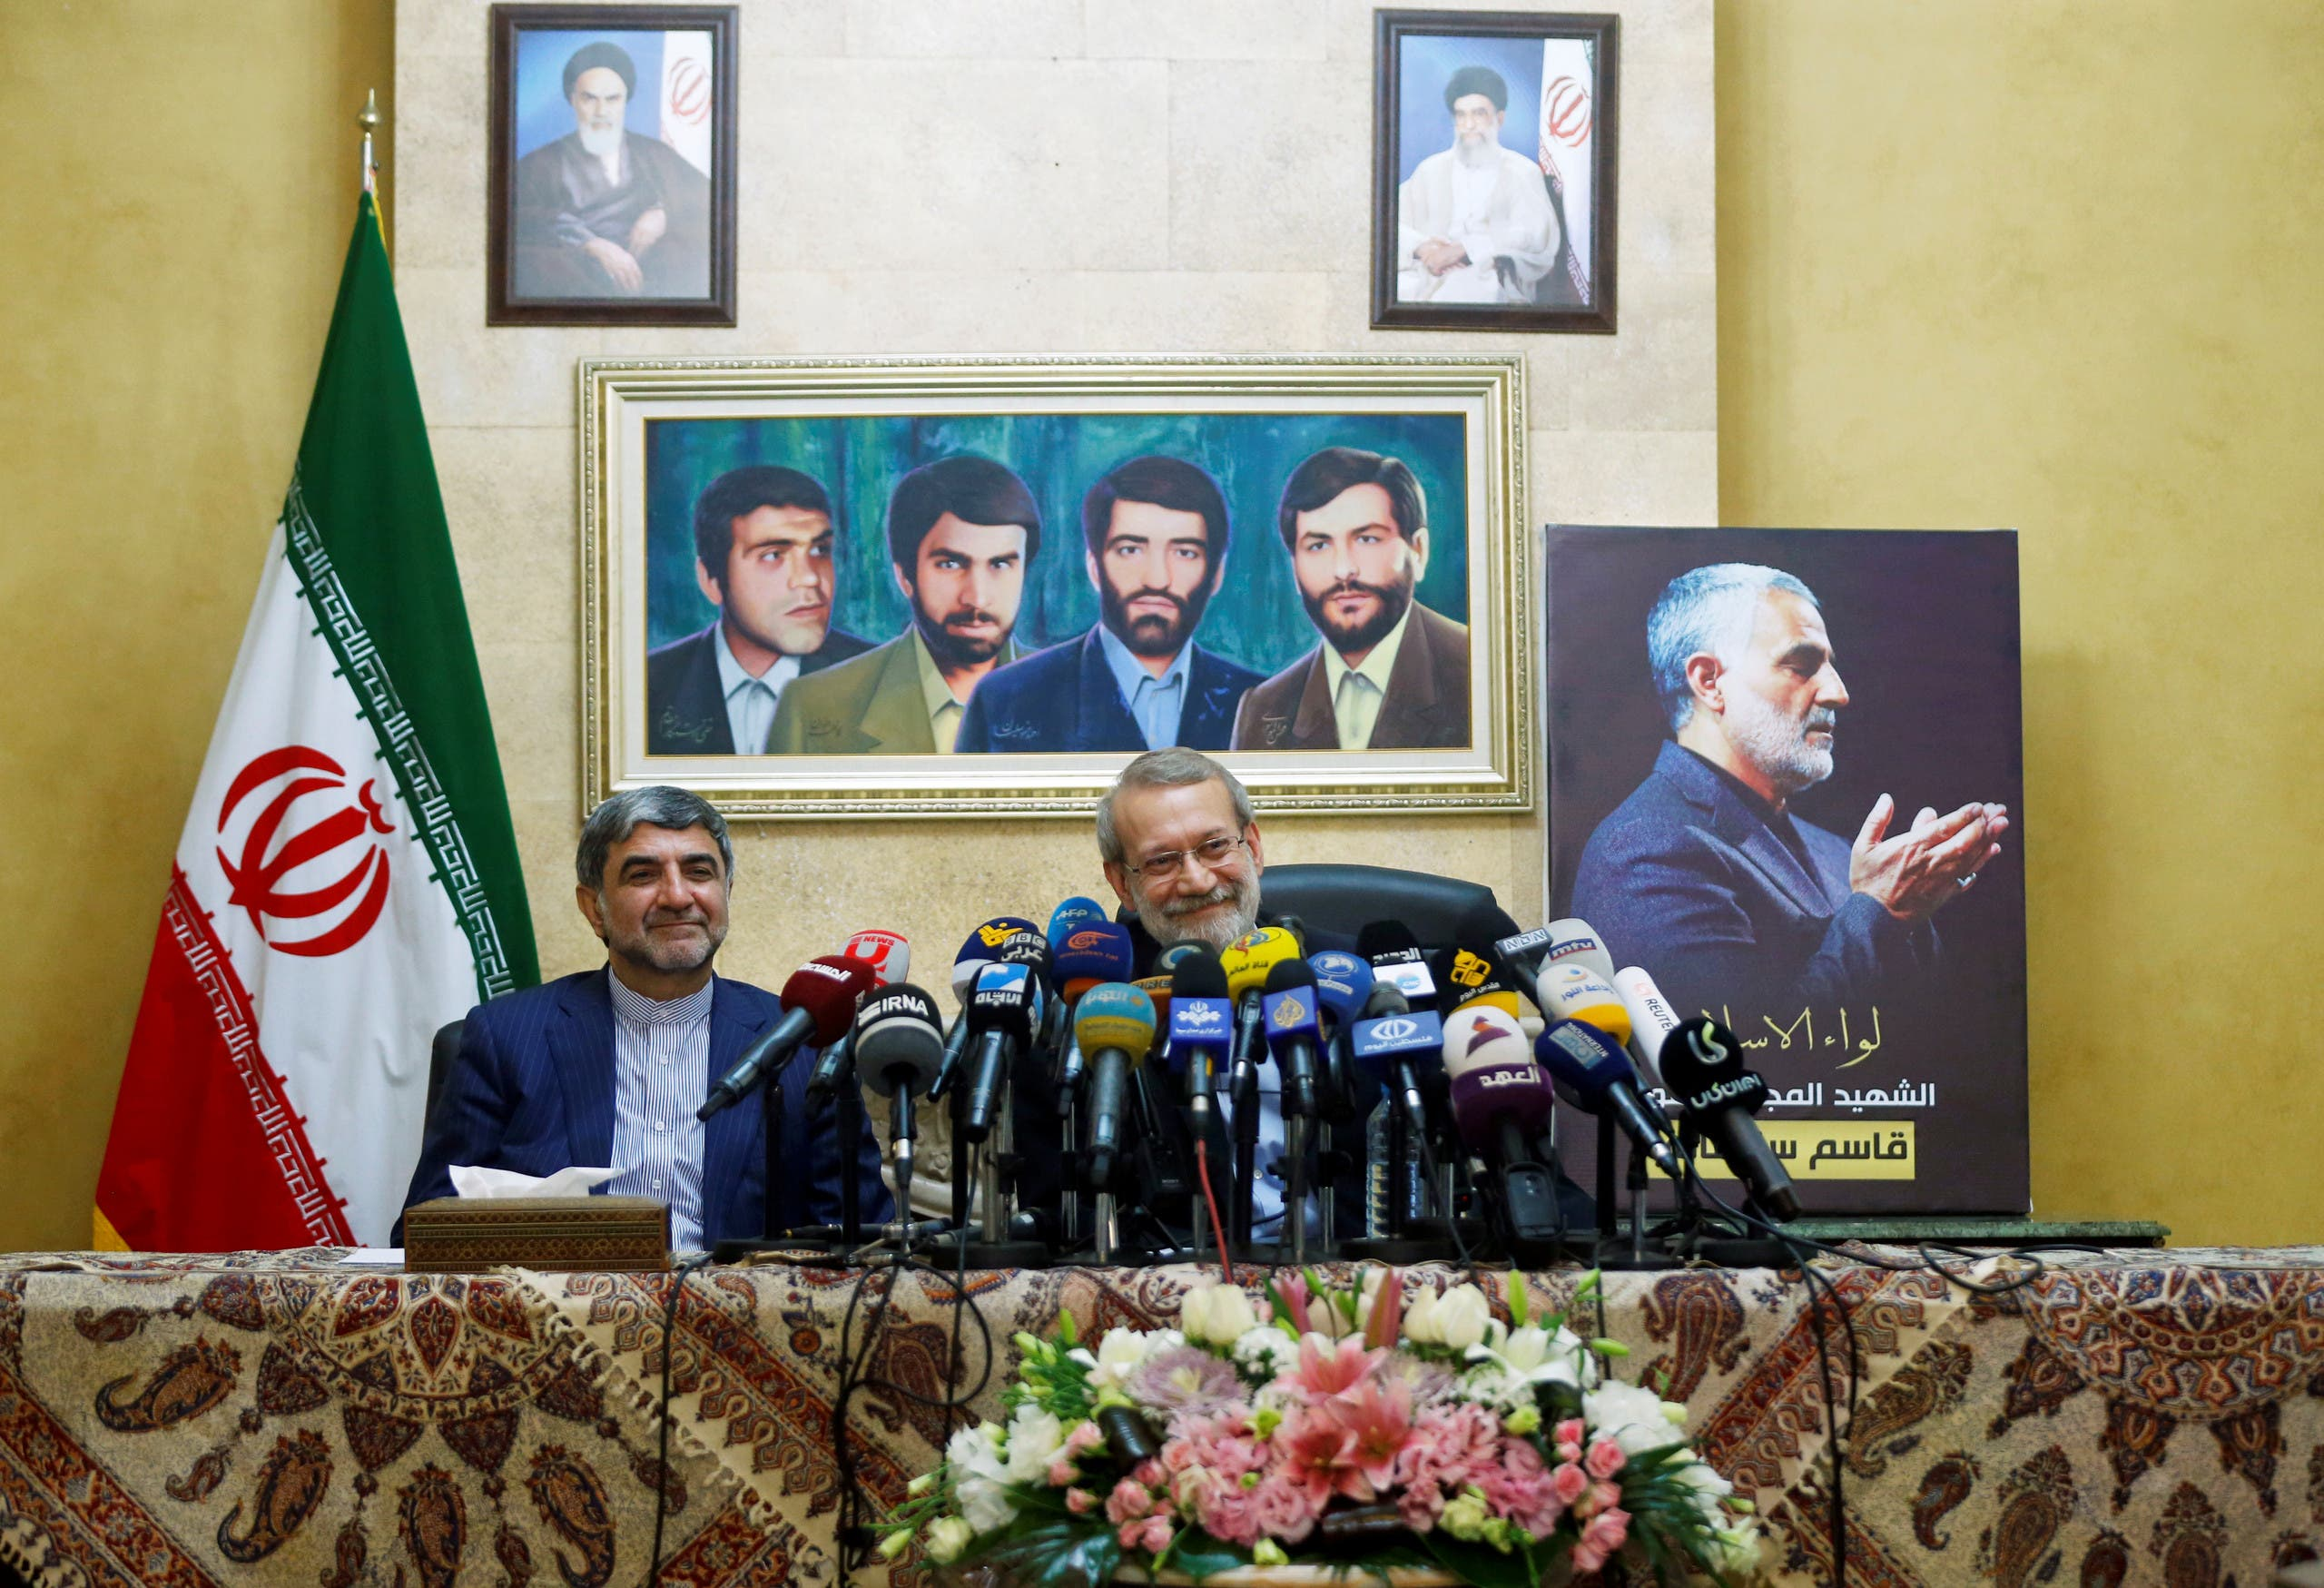 Iranian parliament speaker Ali Larijani attends a news conference at the Iranian embassy in Beirut's southern suburbs, Lebanon. (Reuters)